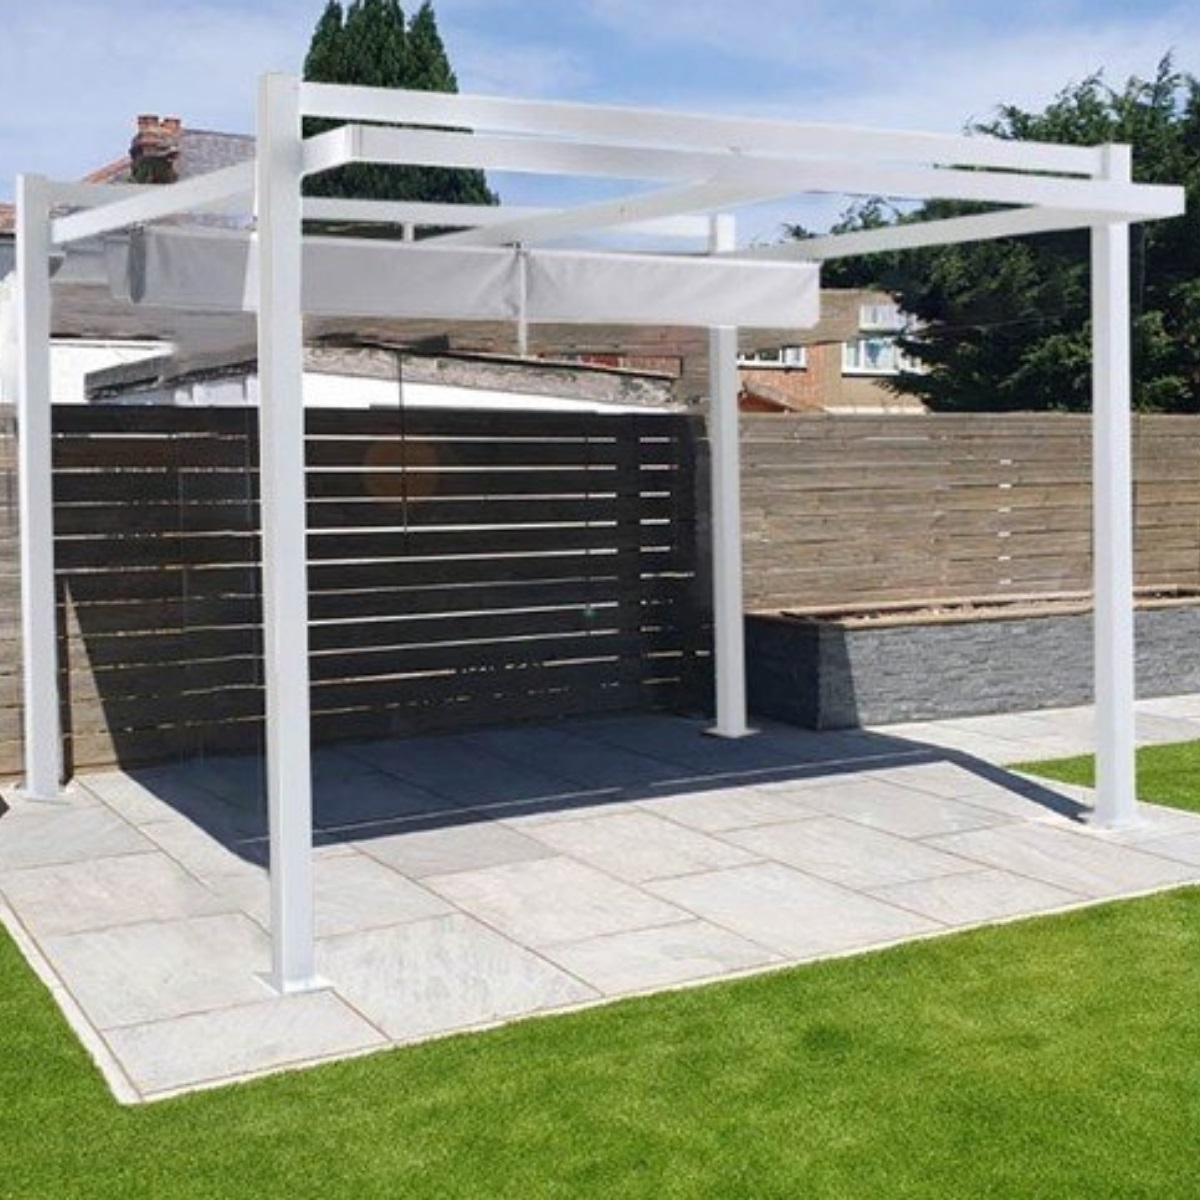 A square white metal gazebo with a retractable canvas roof